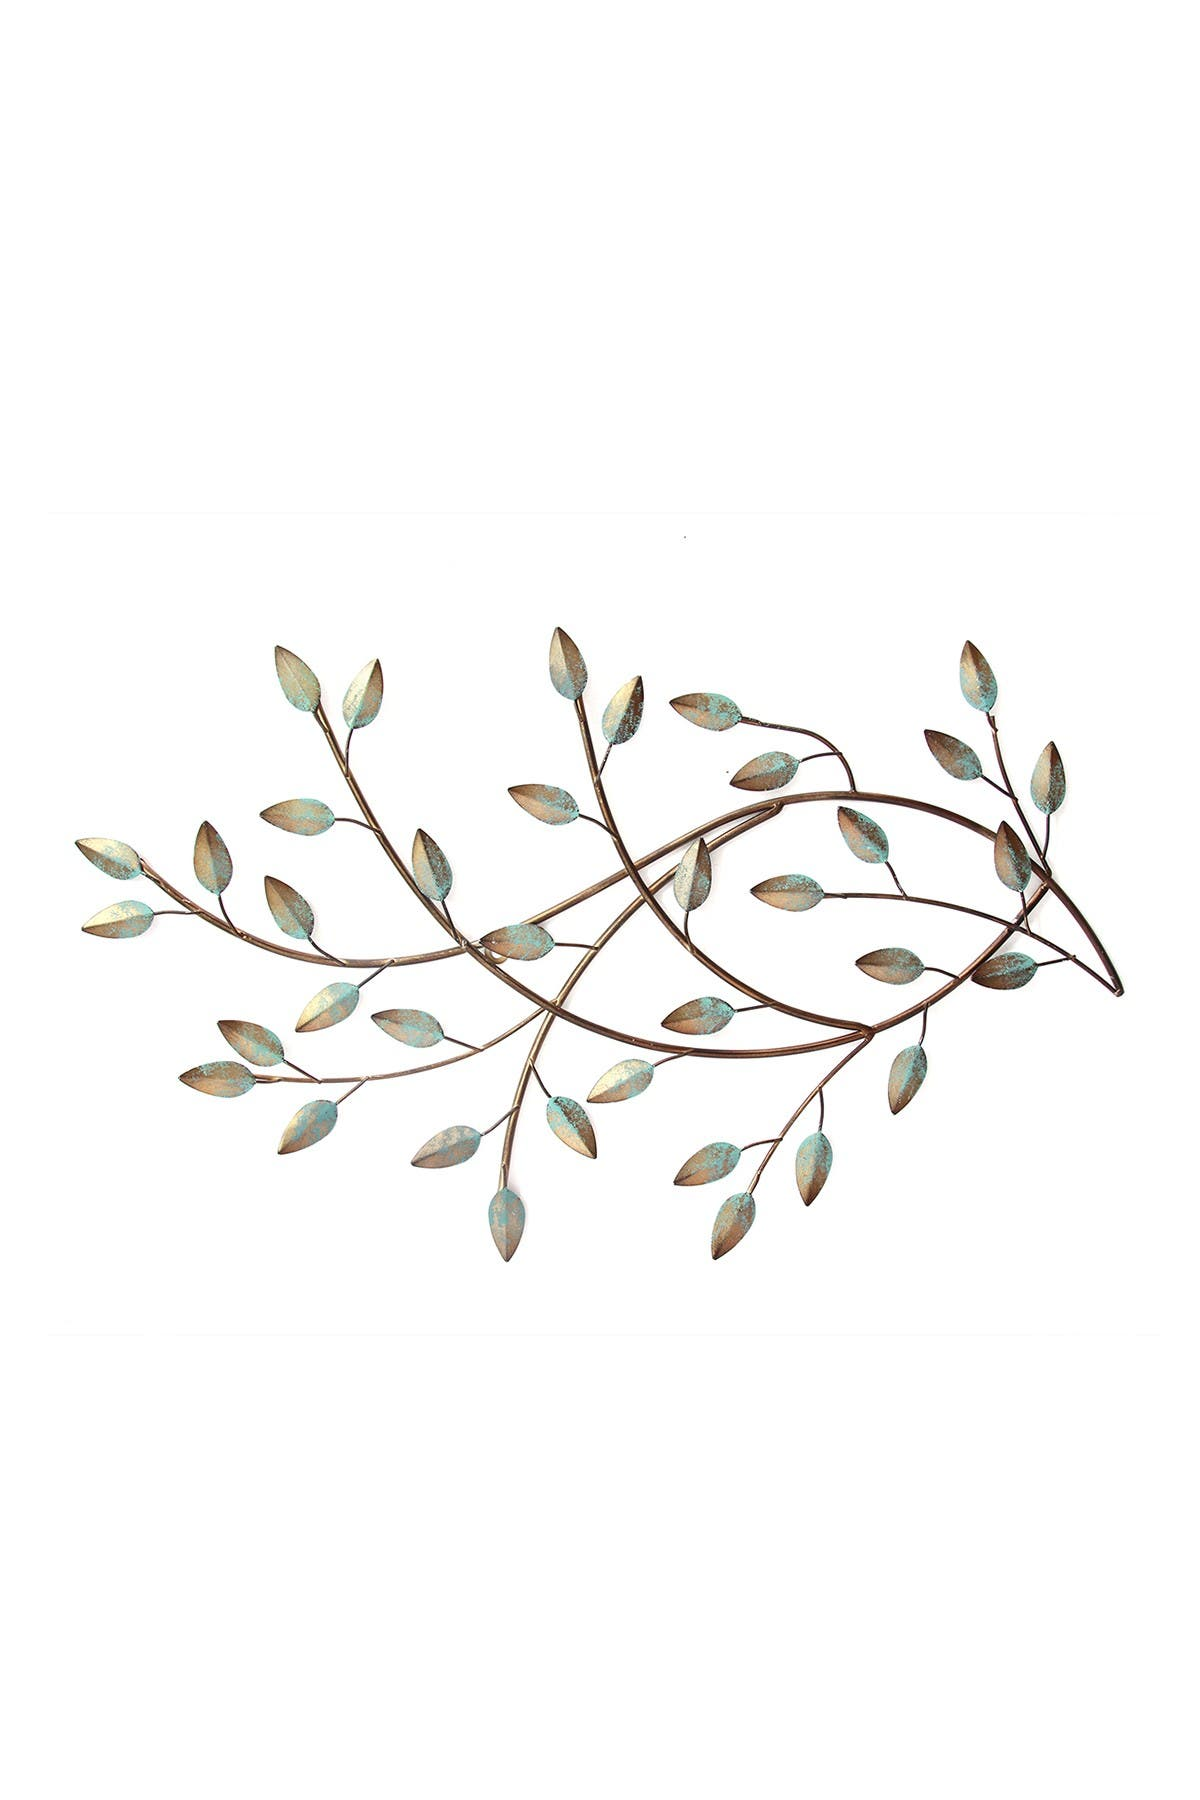 Image of Stratton Home Green Patina Blowing Leaves Wall Decor